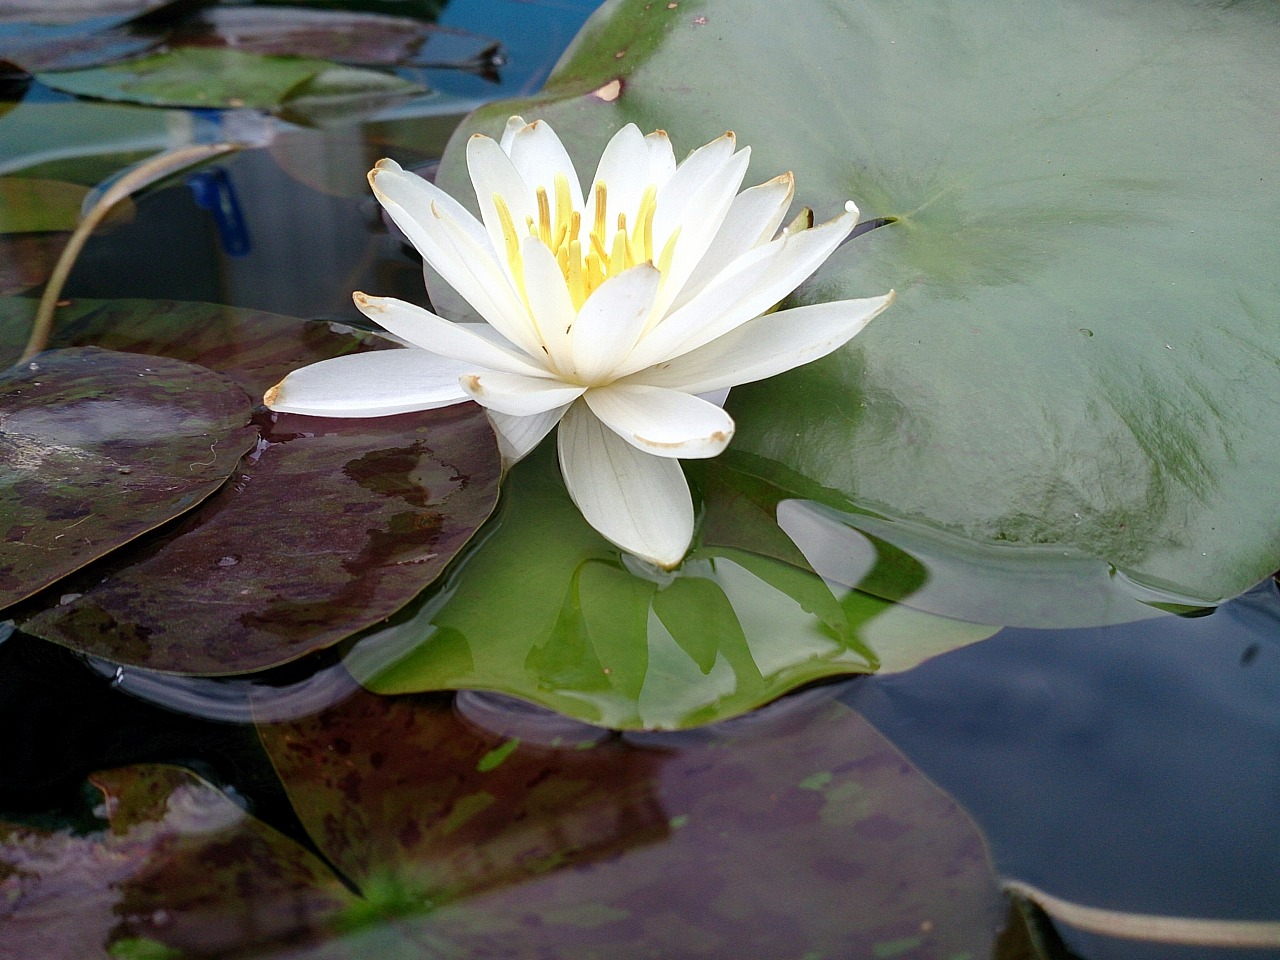 Unknown-WaterLily02-03_20140603.jpg